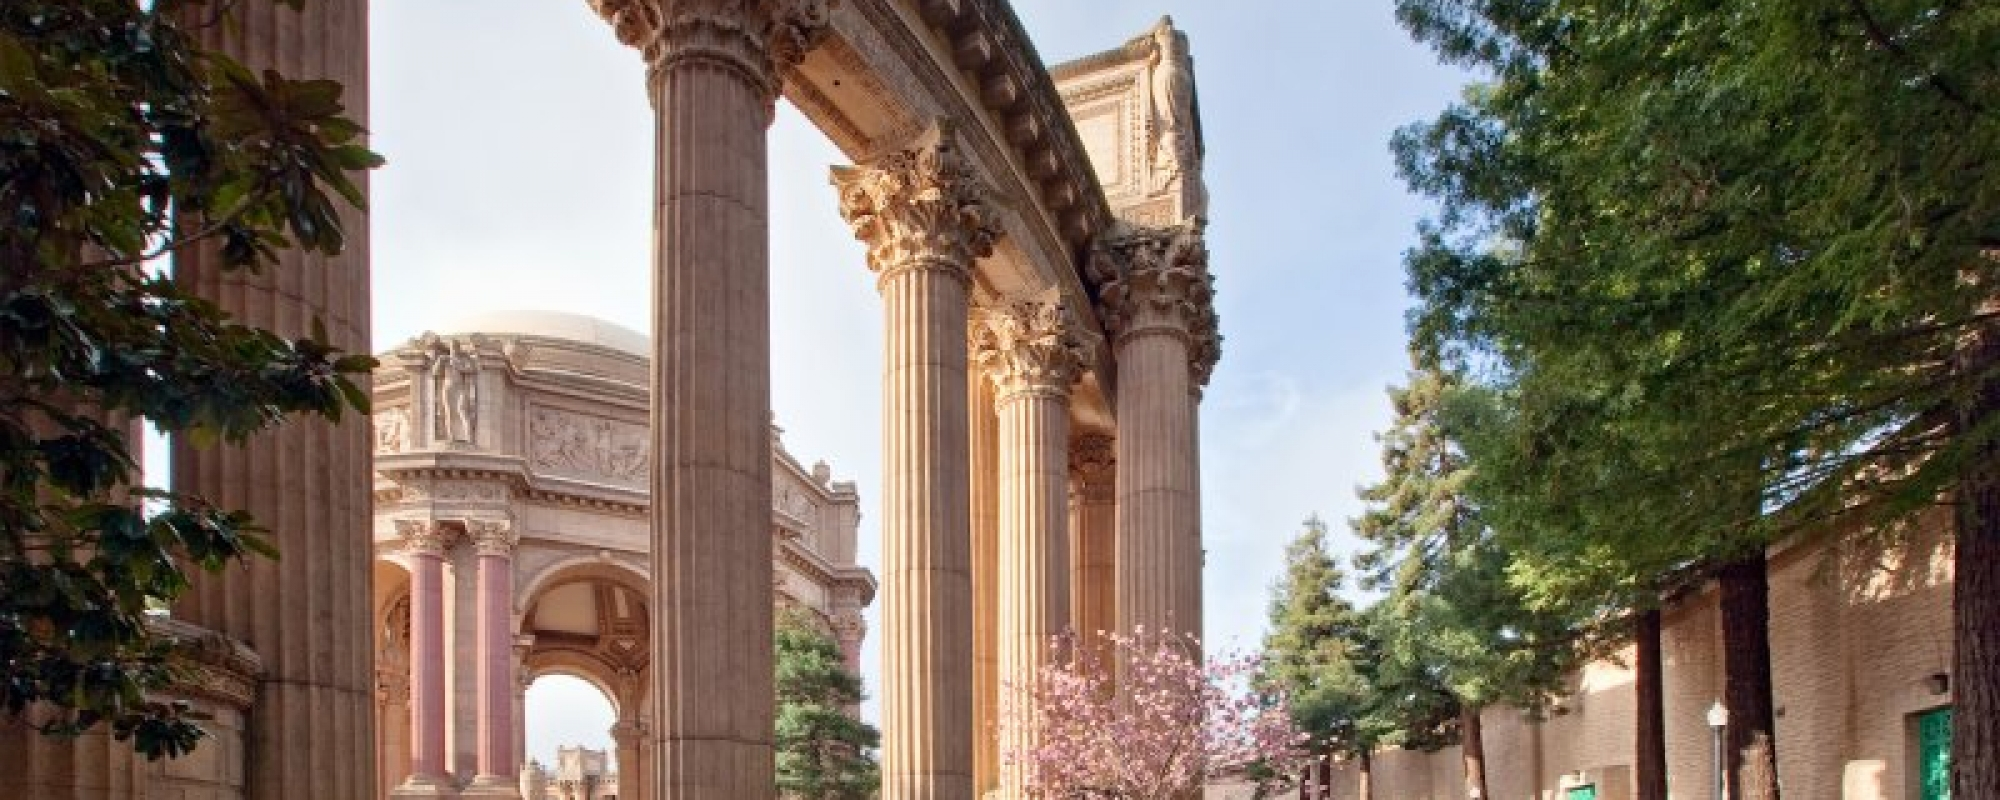 Palace of Fine Arts Restoration